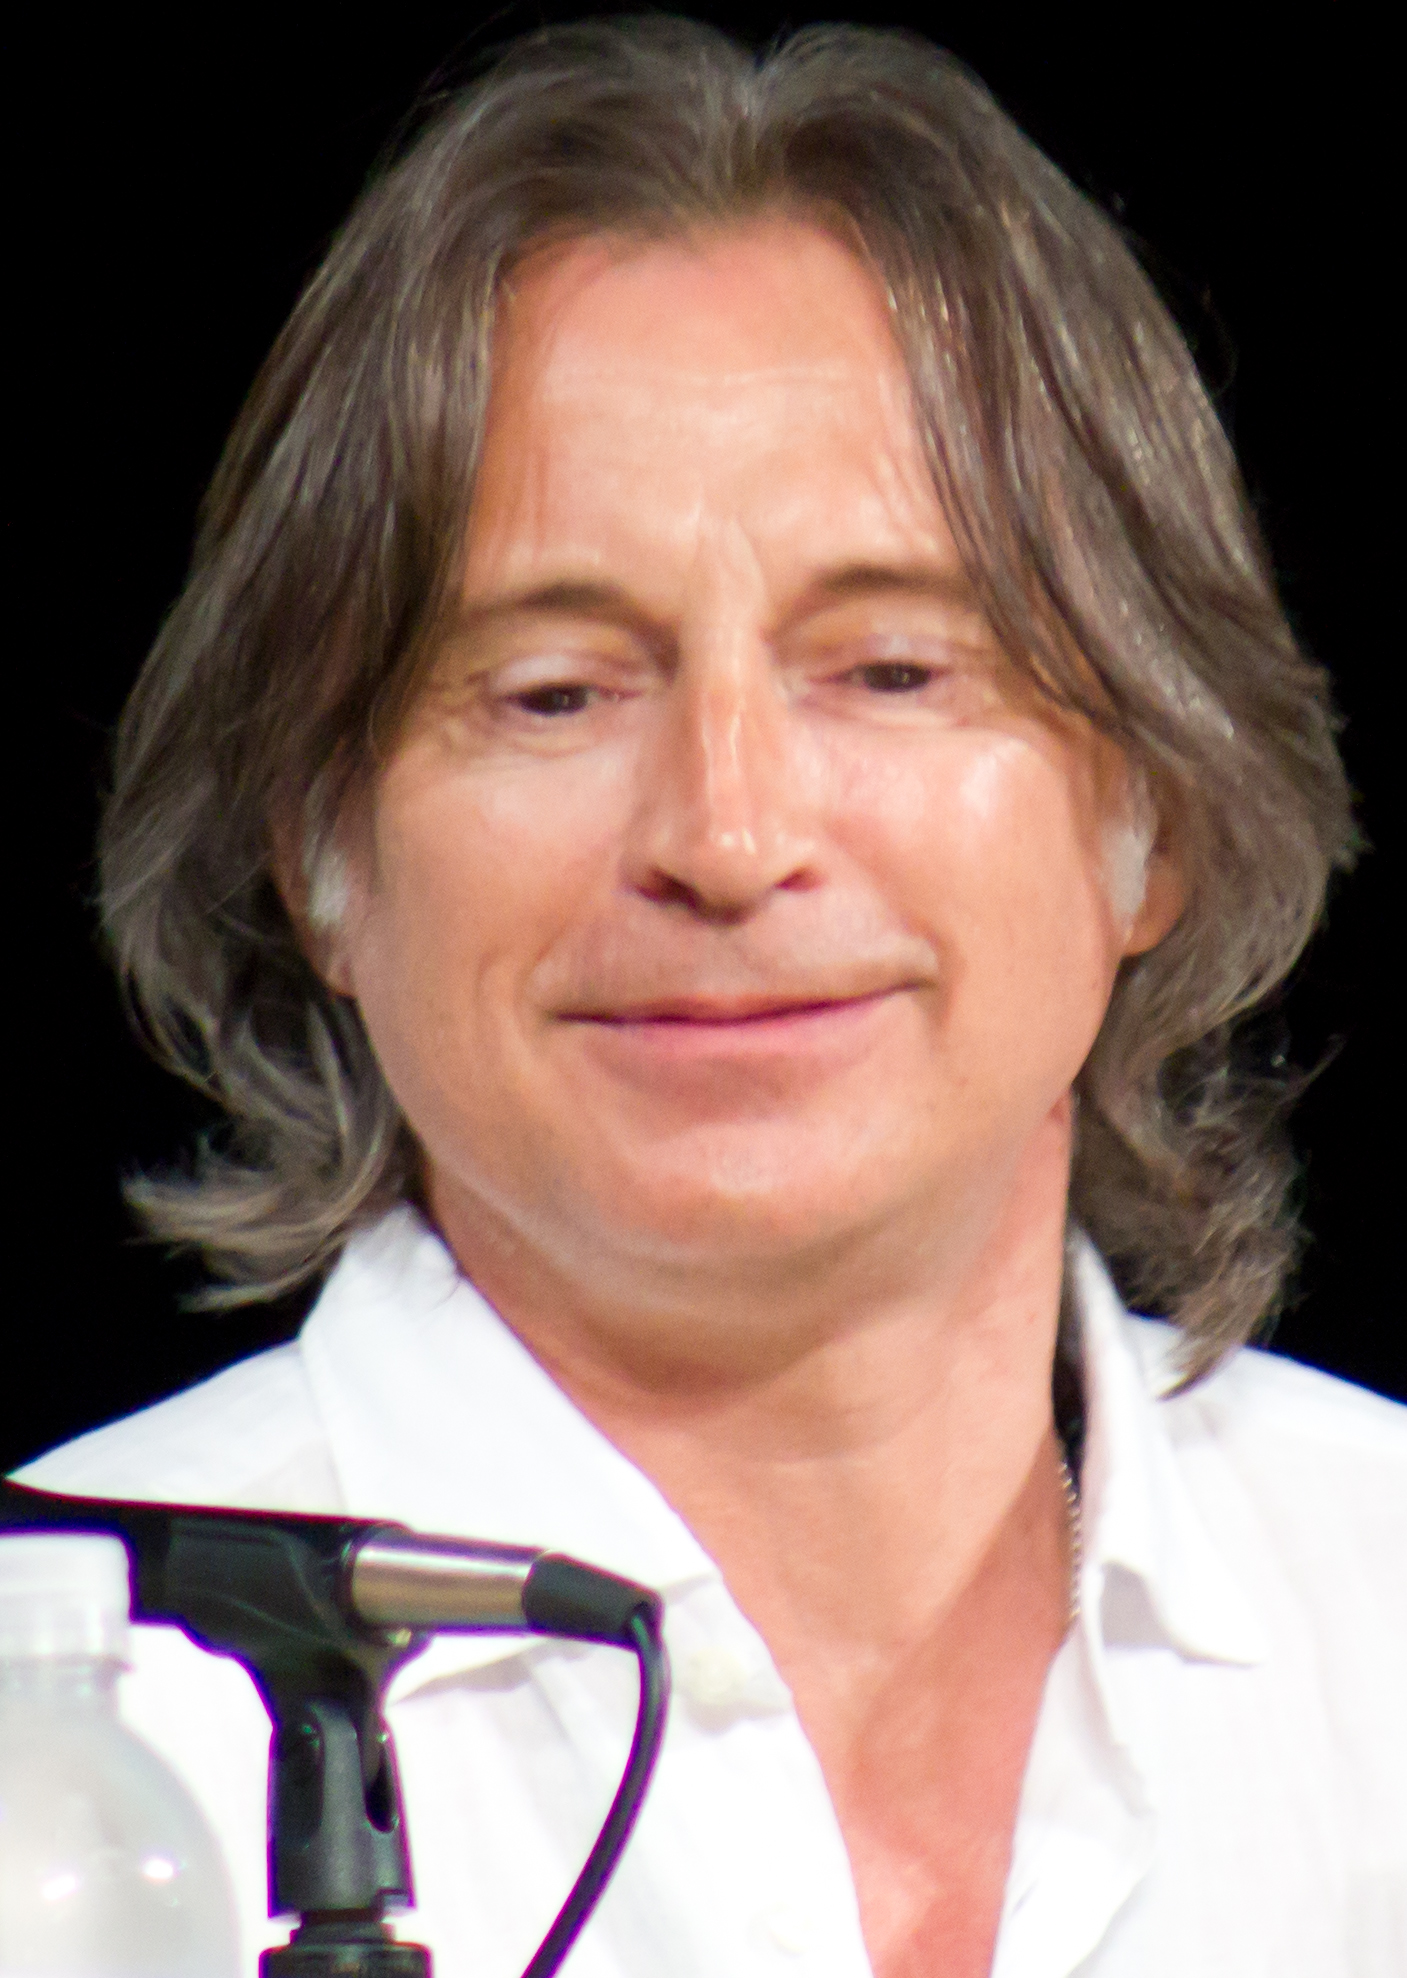 The 57-year old son of father Joseph Carlyle and mother Elizabeth McDonald Robert Carlyle in 2018 photo. Robert Carlyle earned a  million dollar salary - leaving the net worth at 10 million in 2018